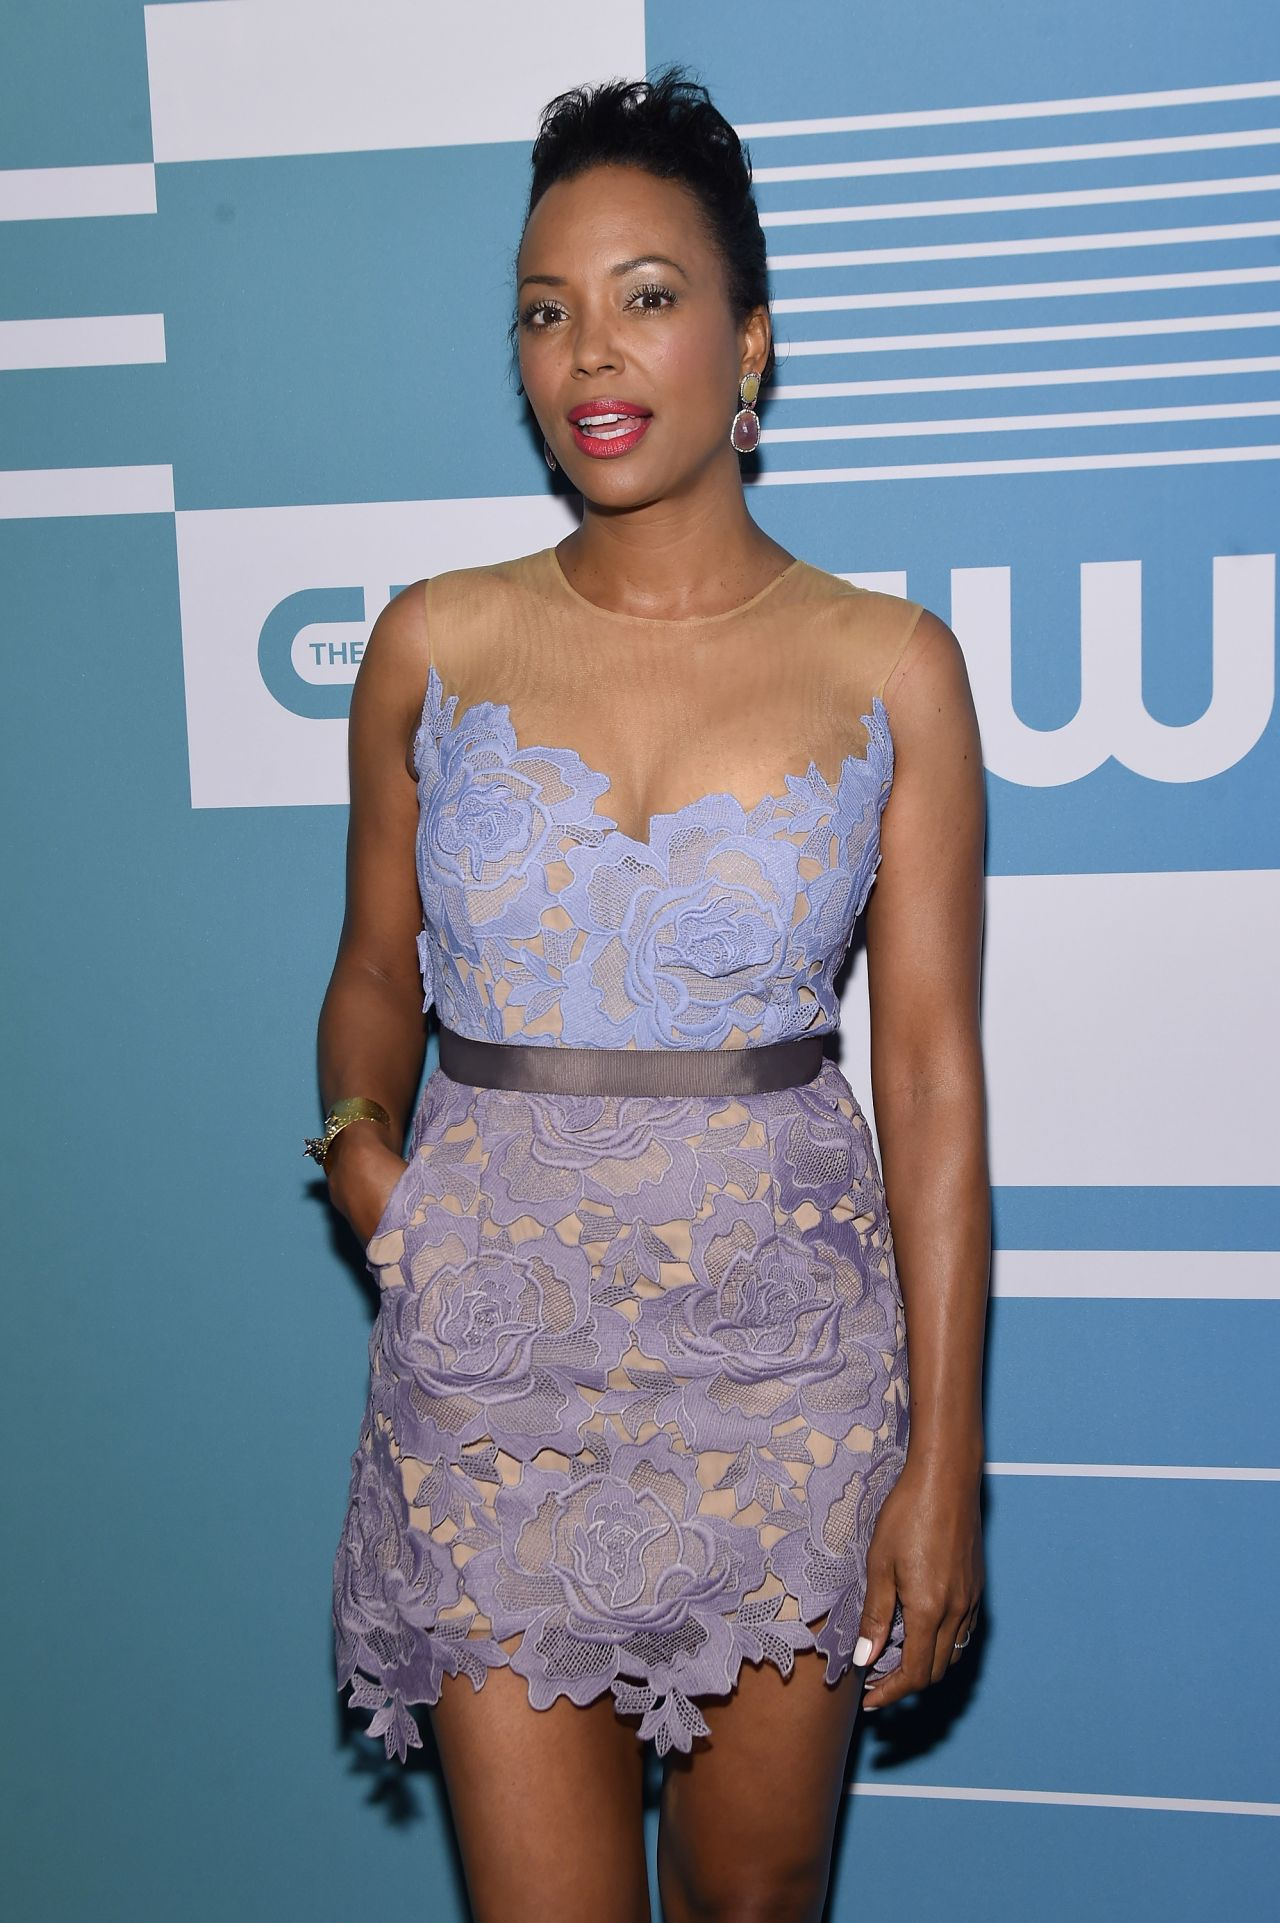 Aisha Tyler Cw Network S New York 2015 Upfront Presentation